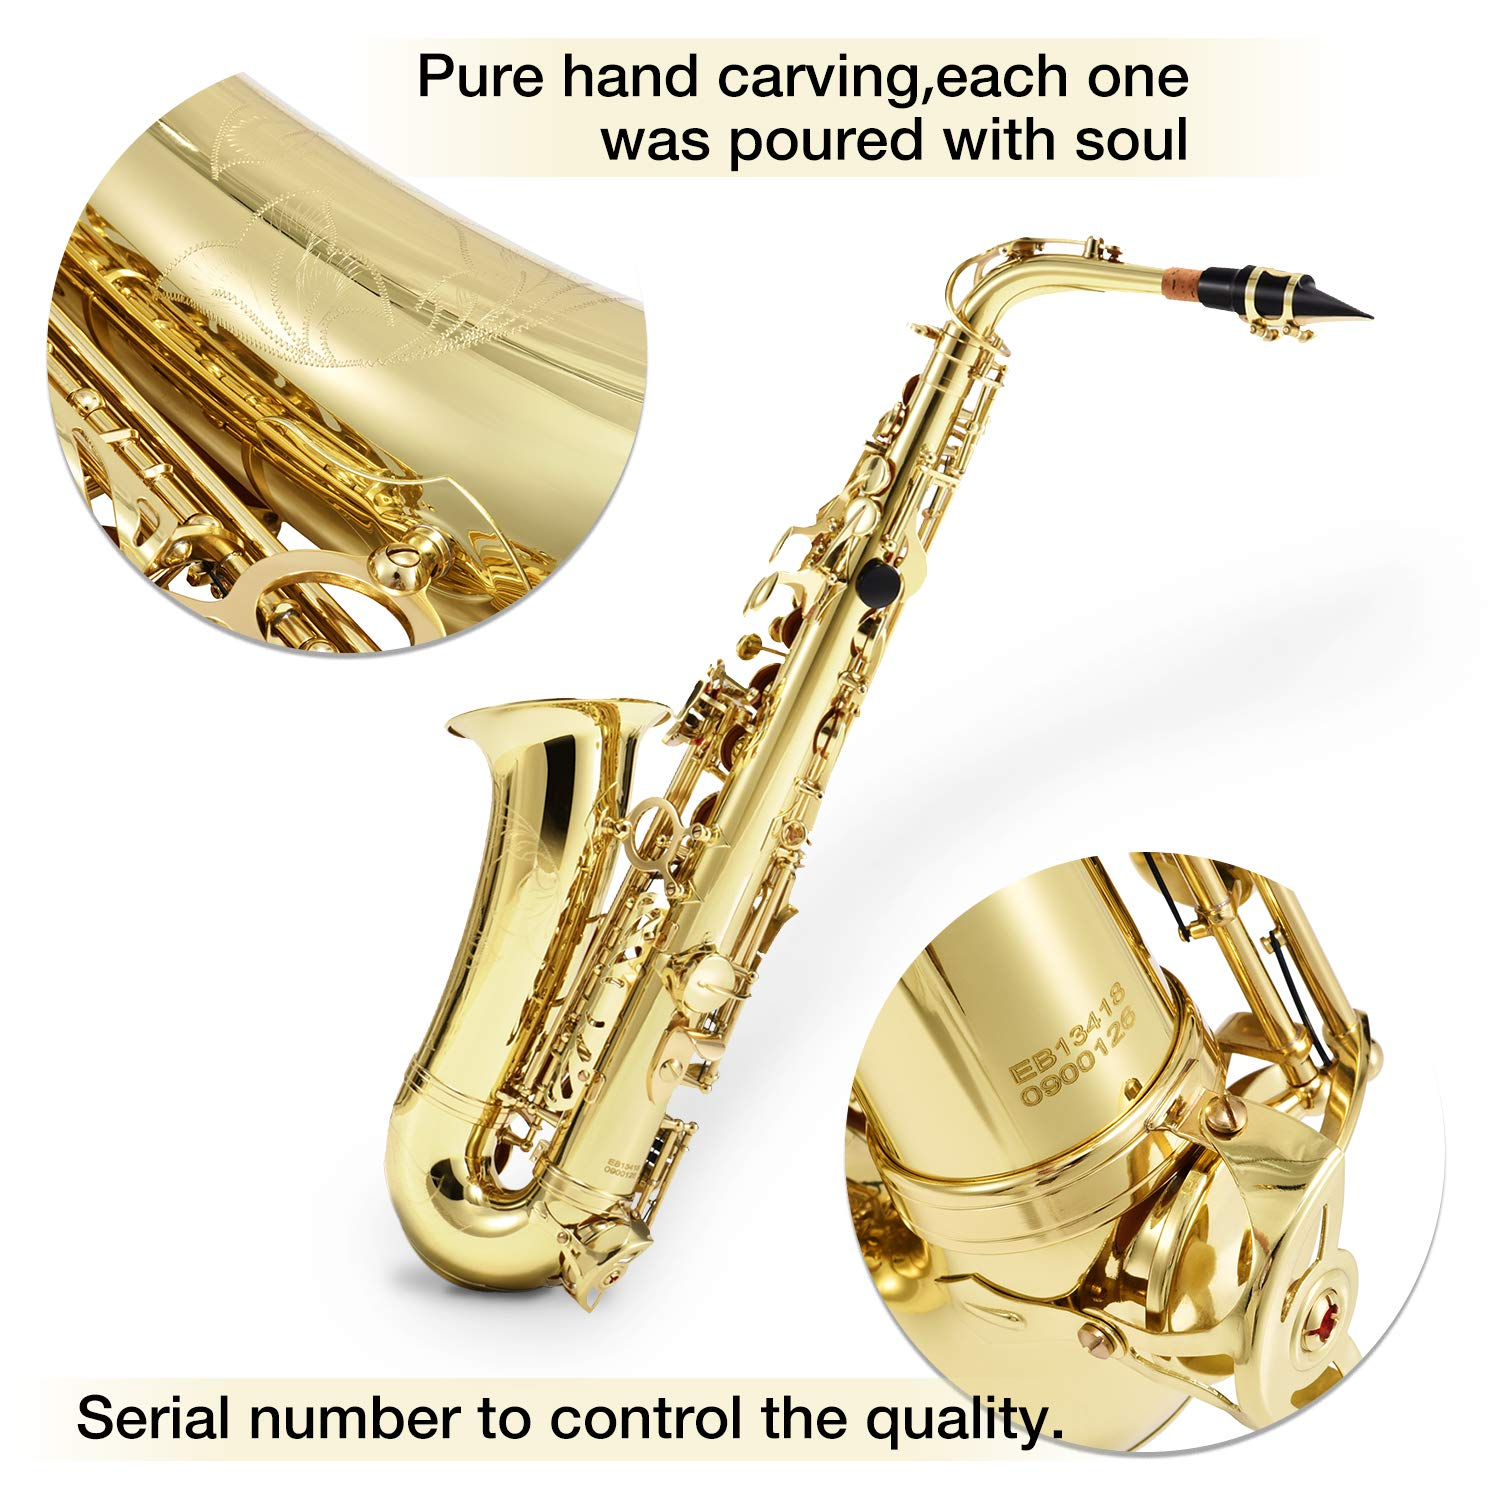 Eastar AS-Ⅱ Student Alto Saxophone E Flat Gold Lacquer Alto Sax Full Kit With Carrying Sax Case Mouthpiece Straps Reeds Stand Cork Grease by Eastar (Image #3)